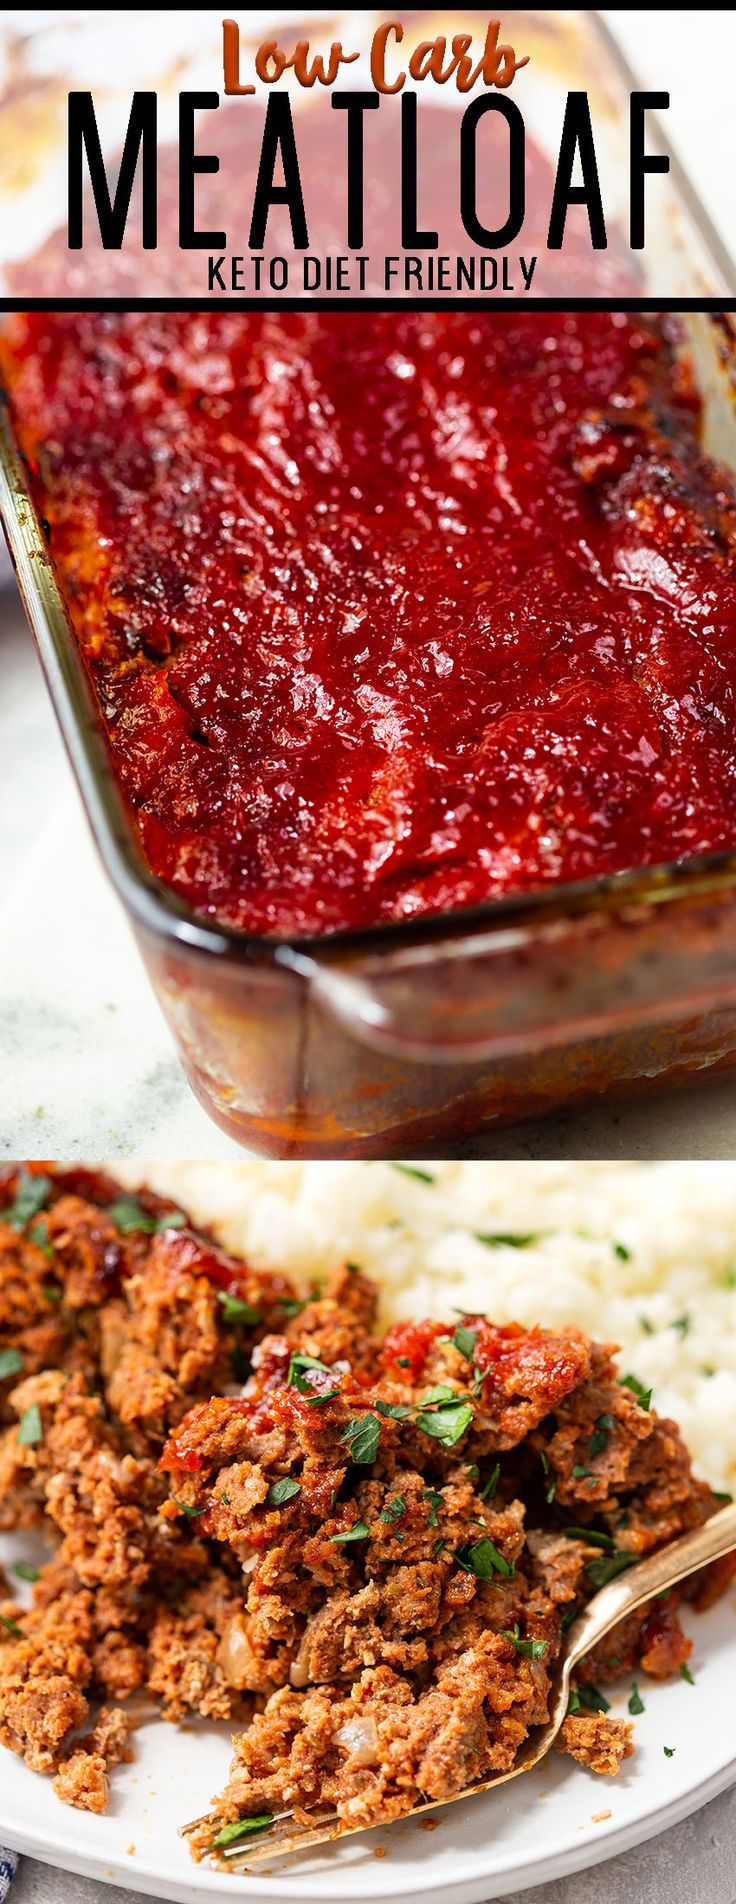 Keto Low Carb Meatloaf – #Carb #dietfriendly #Keto…